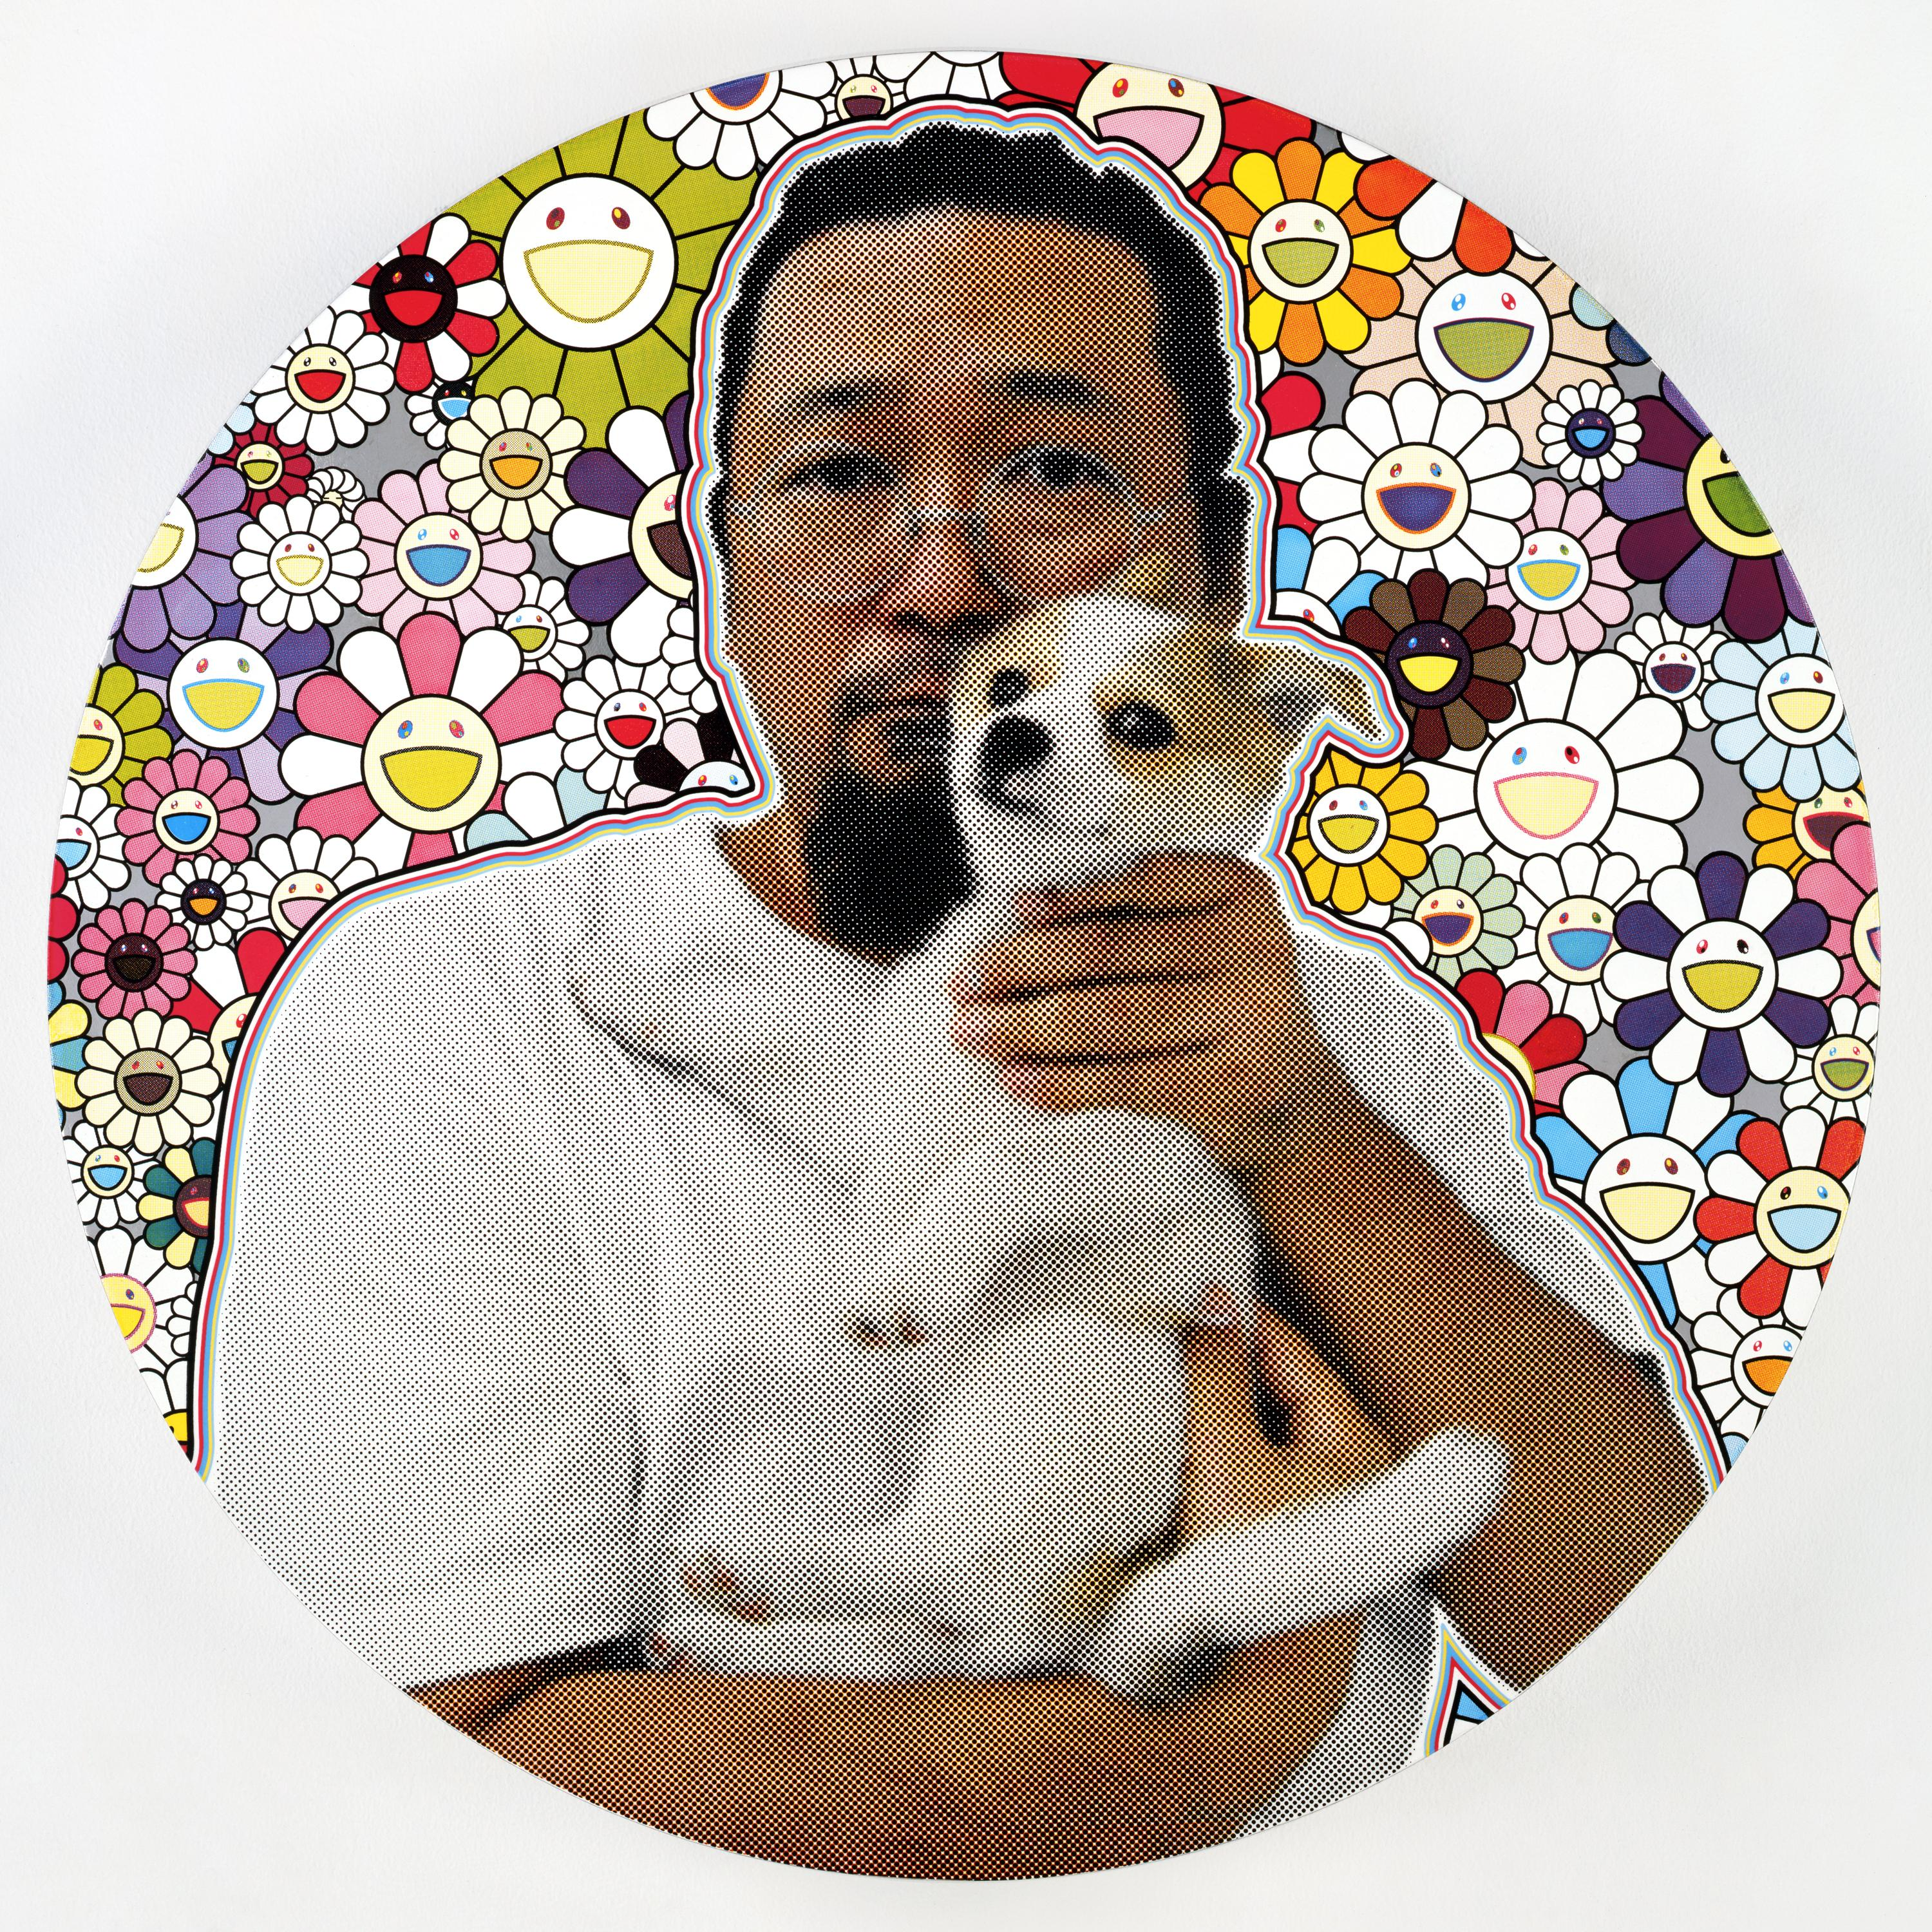 A dark-haired person with glasses and a goatee holds a small dog. Their photo appears against a background of vividly colored smiling daisies.